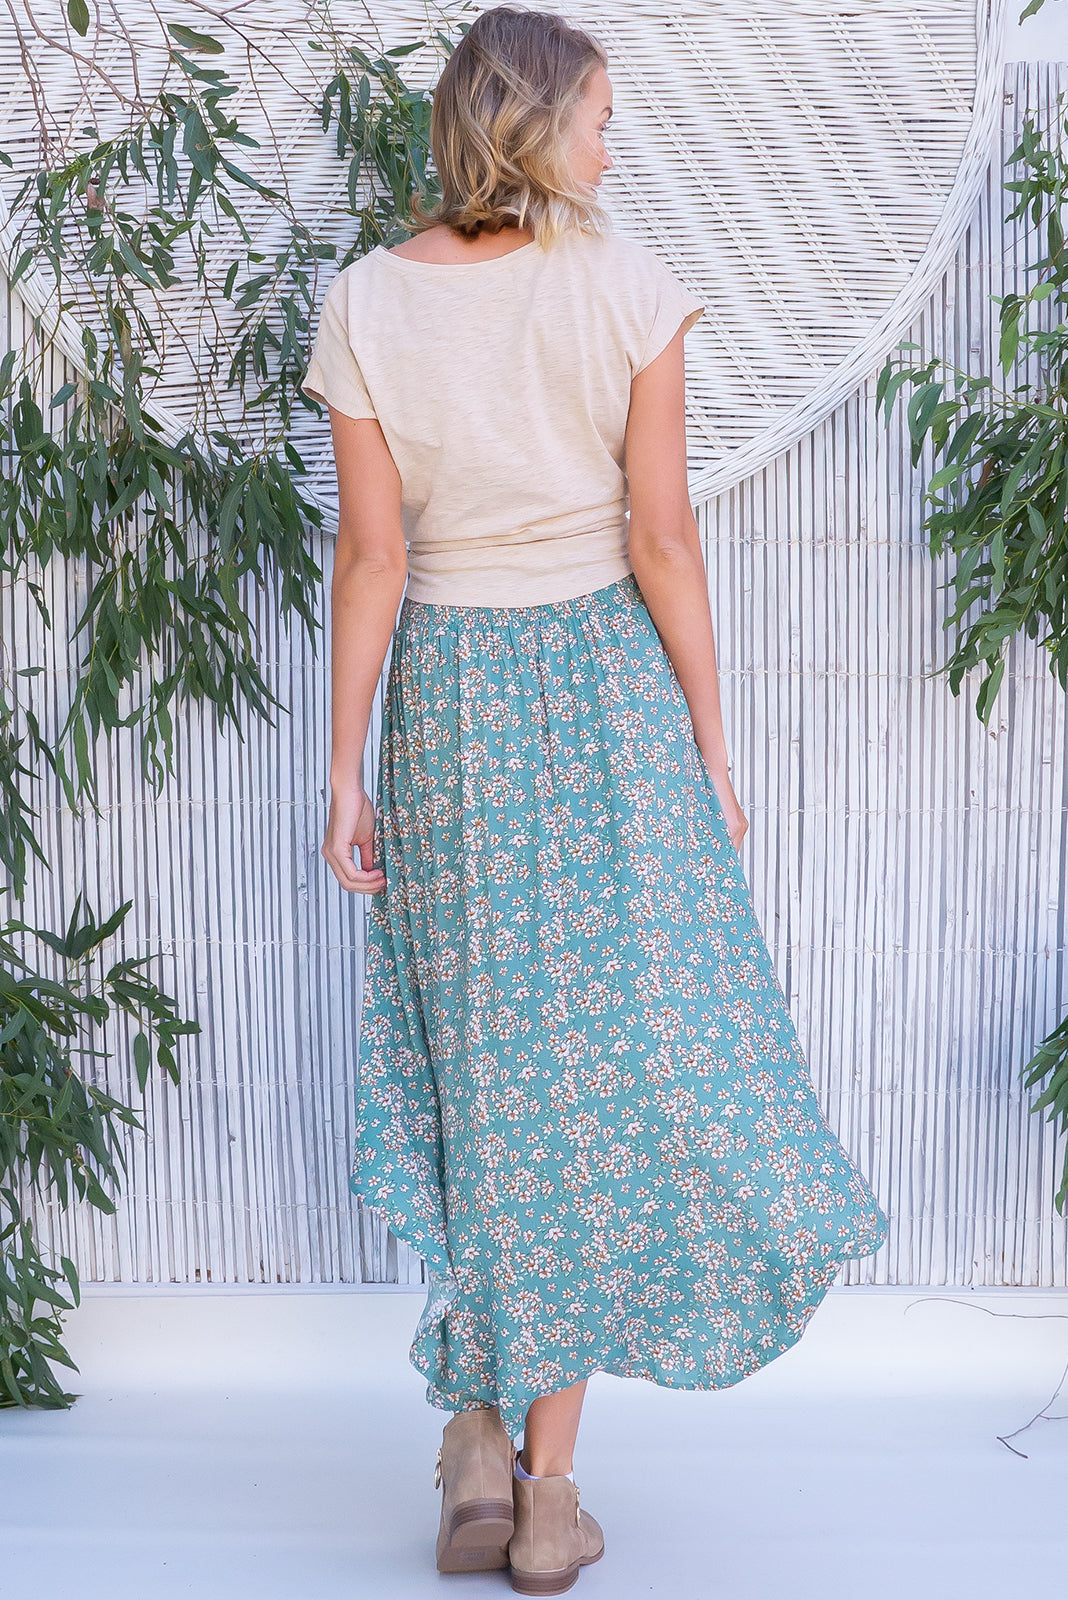 Sails Sage Scatter Maxi Skirt features scooped hemline shorter at sides, V-shaped panelled waist band, shirred back waist, functional side pockets, woven 100% rayon in soft green base with dainty floral print.